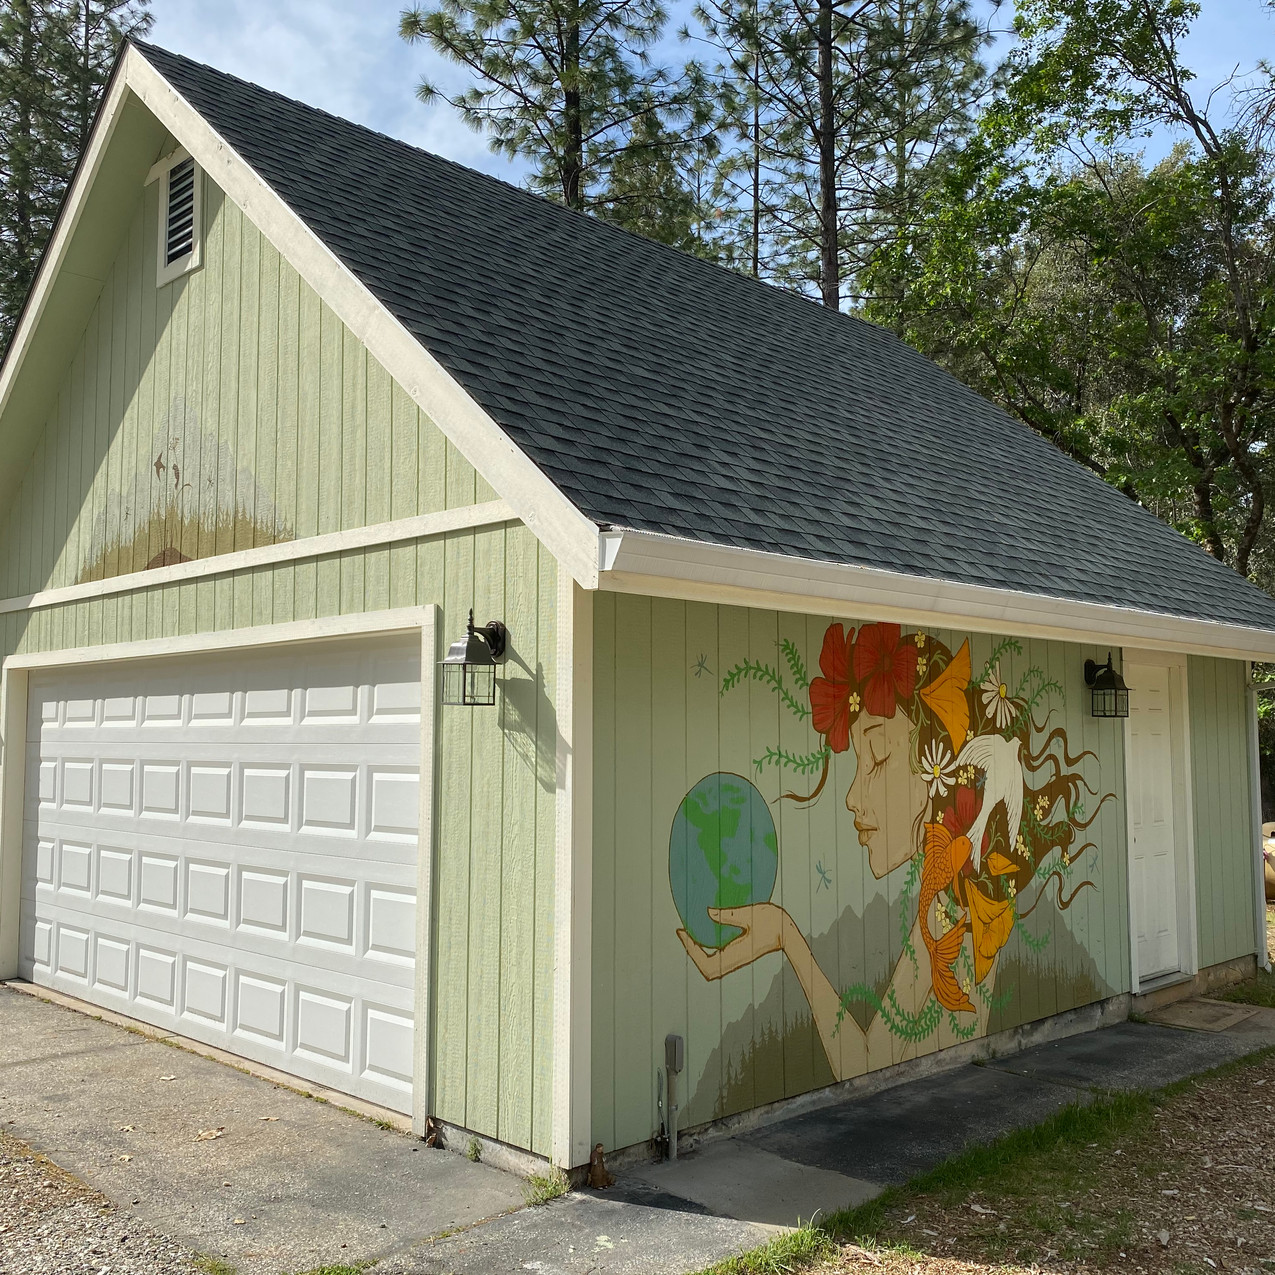 HOME stay-at-home mural festival